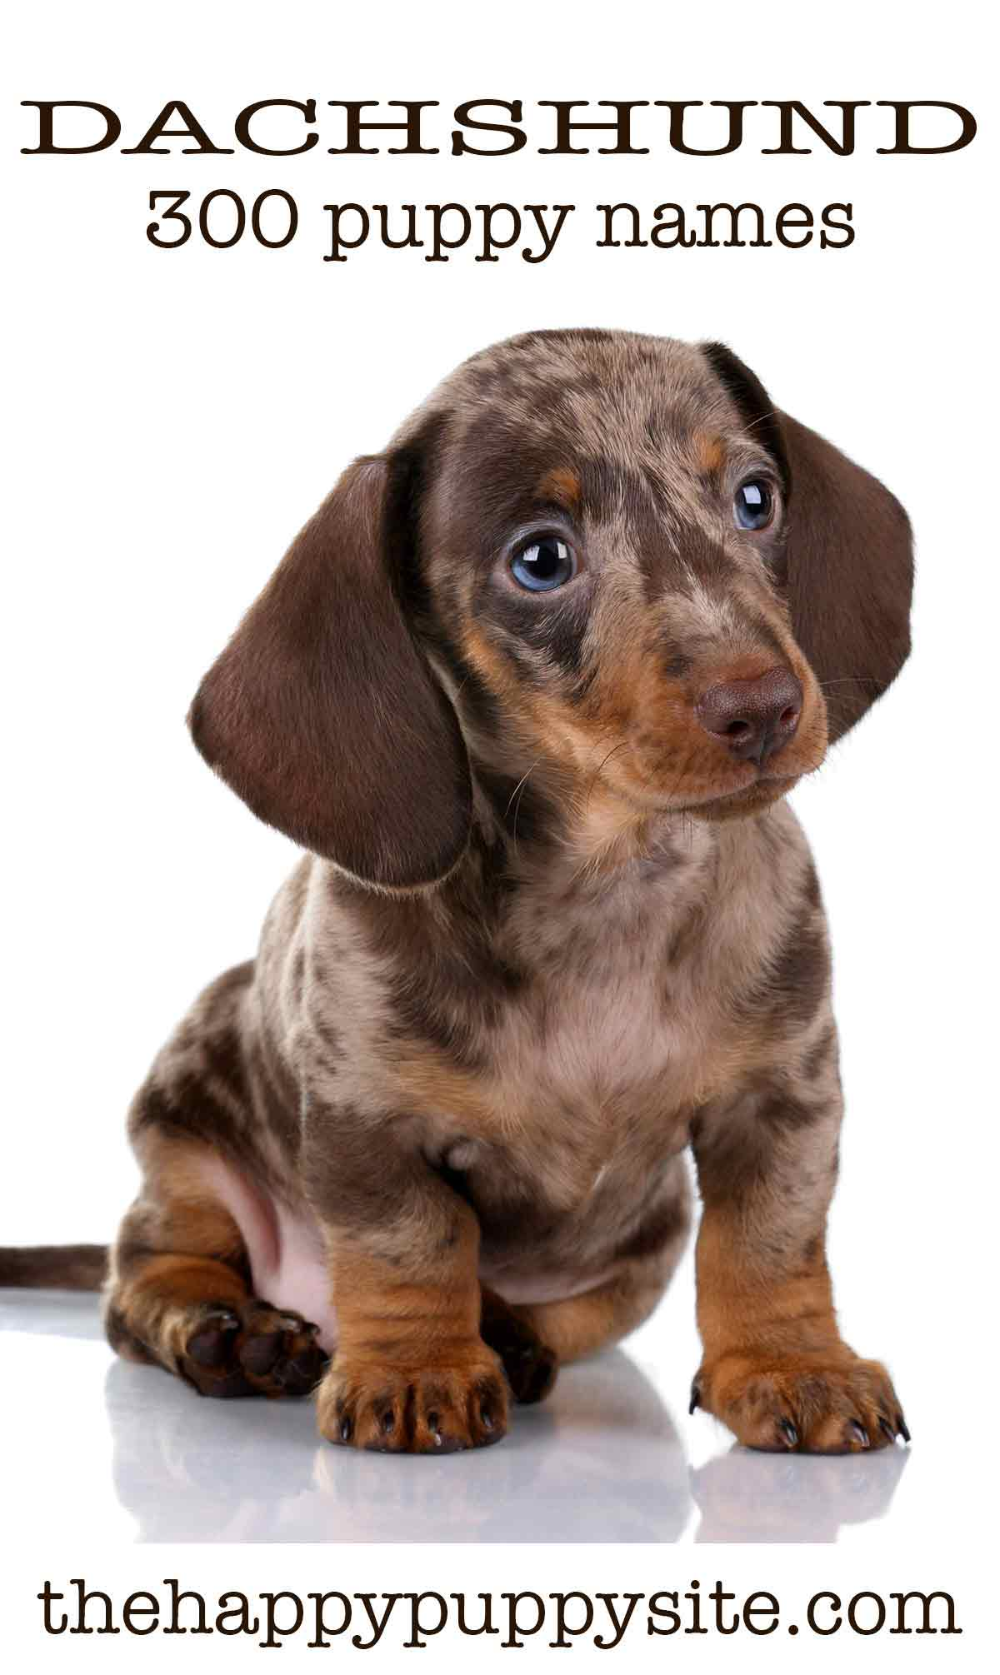 Dachshund Names 300 Ideas For Naming Your Wiener Dog In 2020 Dachshund Puppy Miniature Puppy Names Dog Names